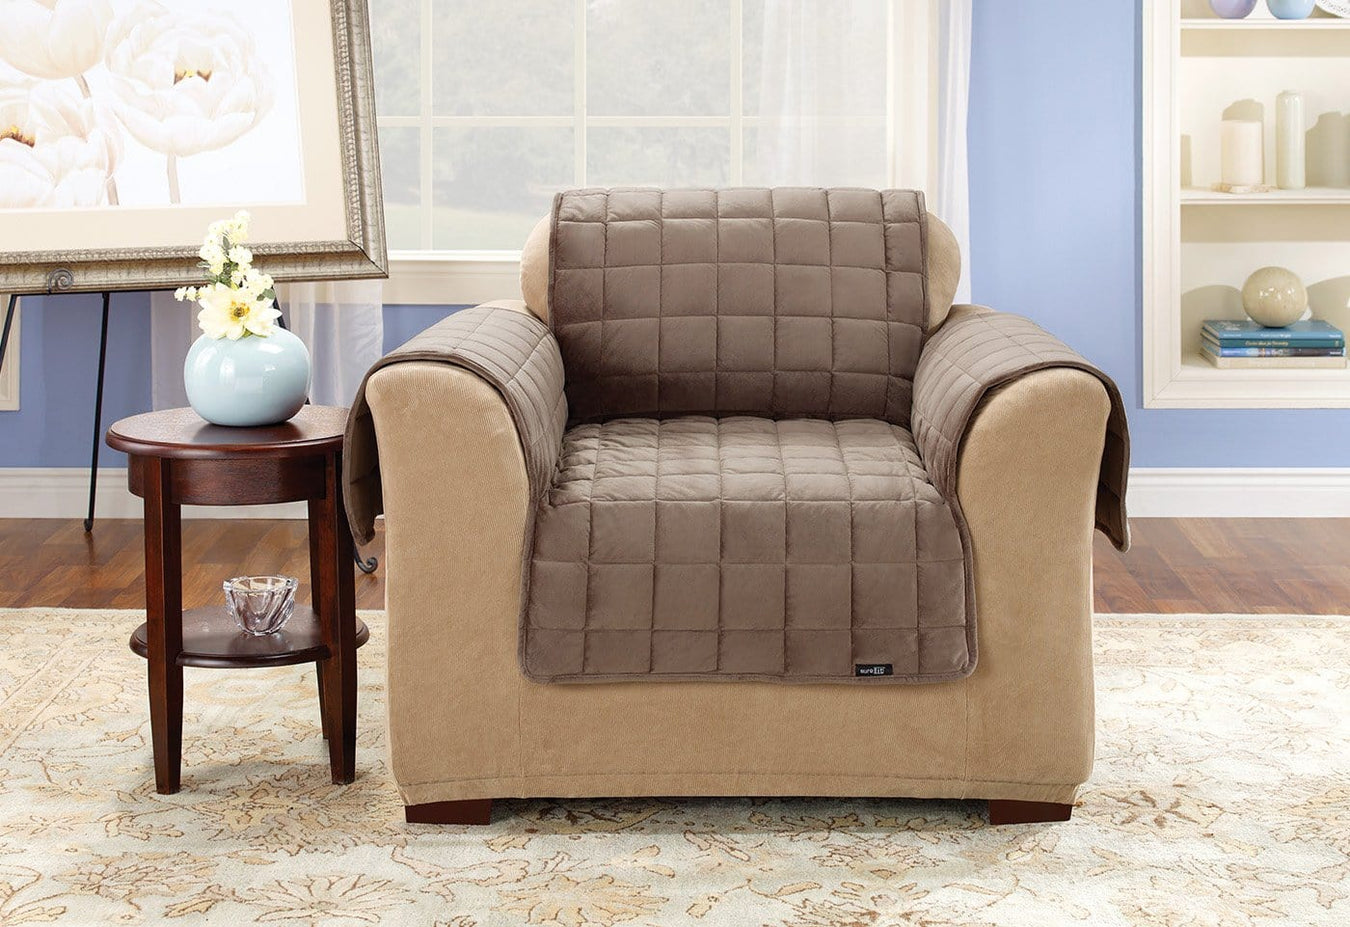 Deluxe Comfort Chair Furniture Cover With Arms